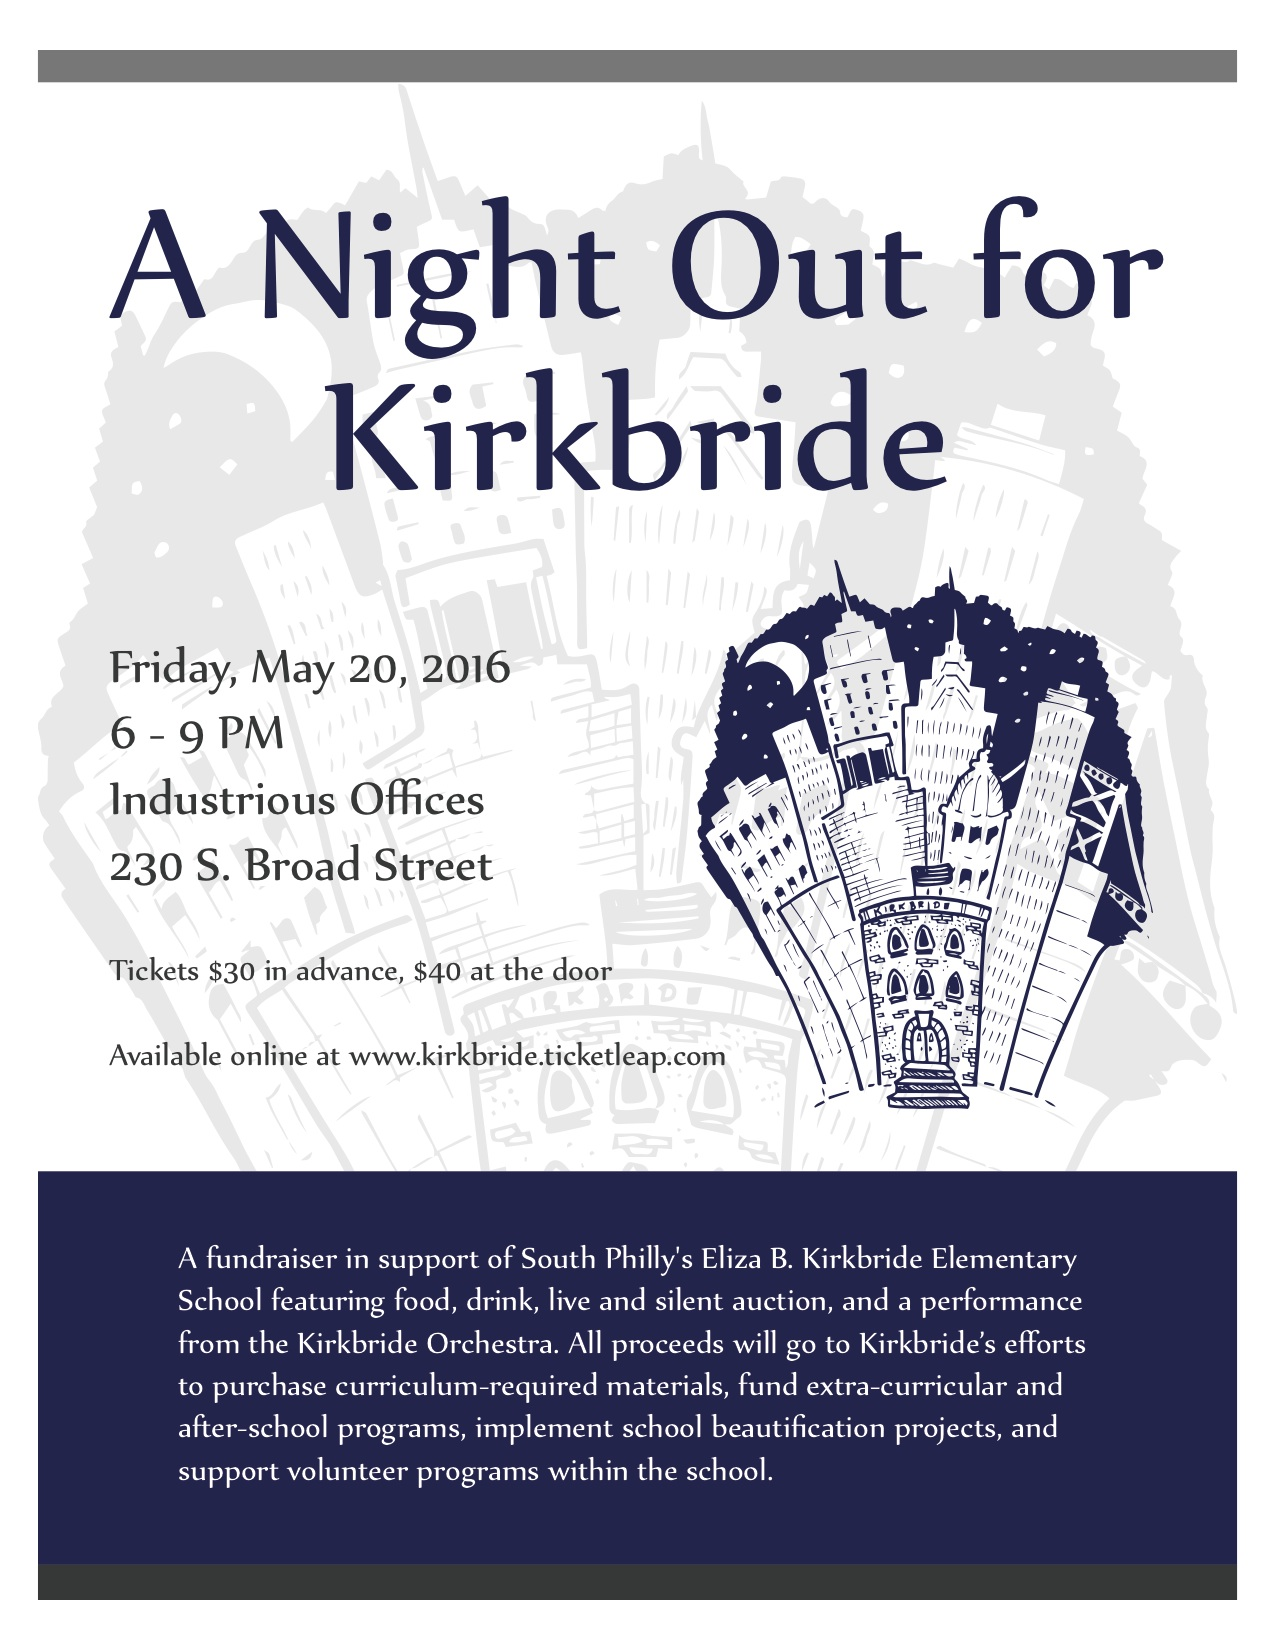 Kirkbride_NightOut_Flyers To Print